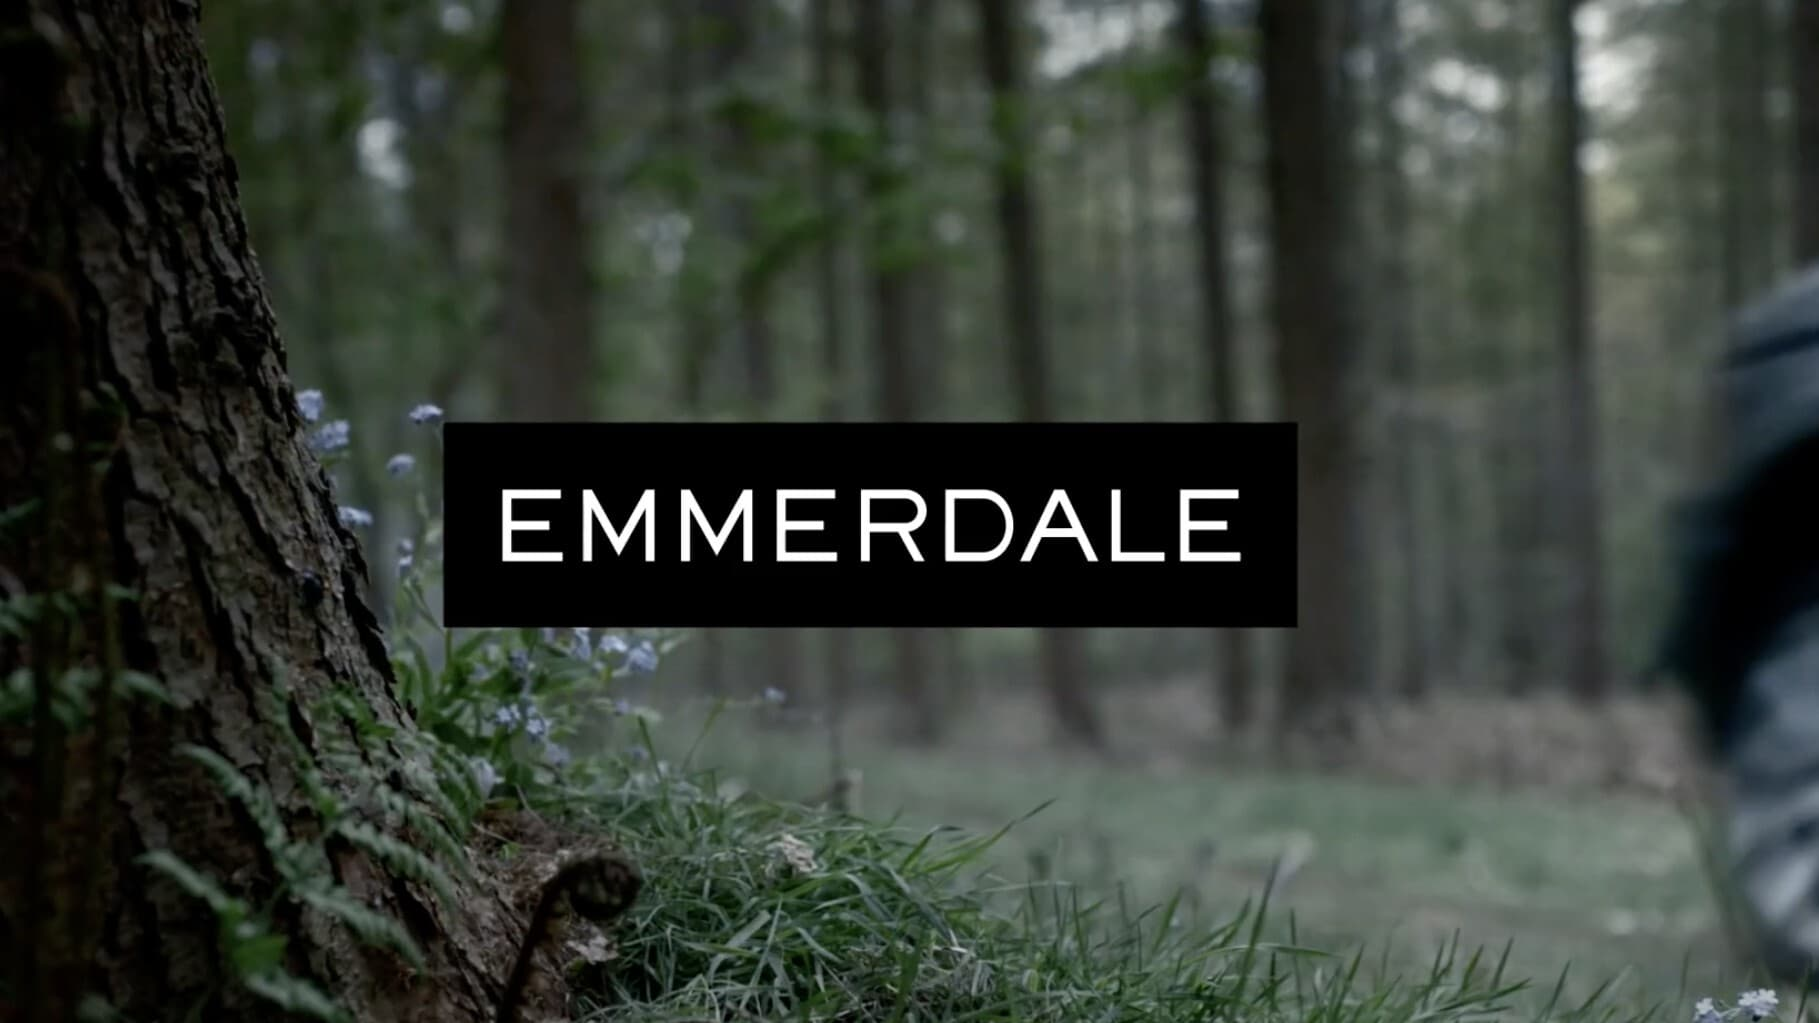 Emmerdale - Season 46 Episode 285 : Friday 15th November 2018